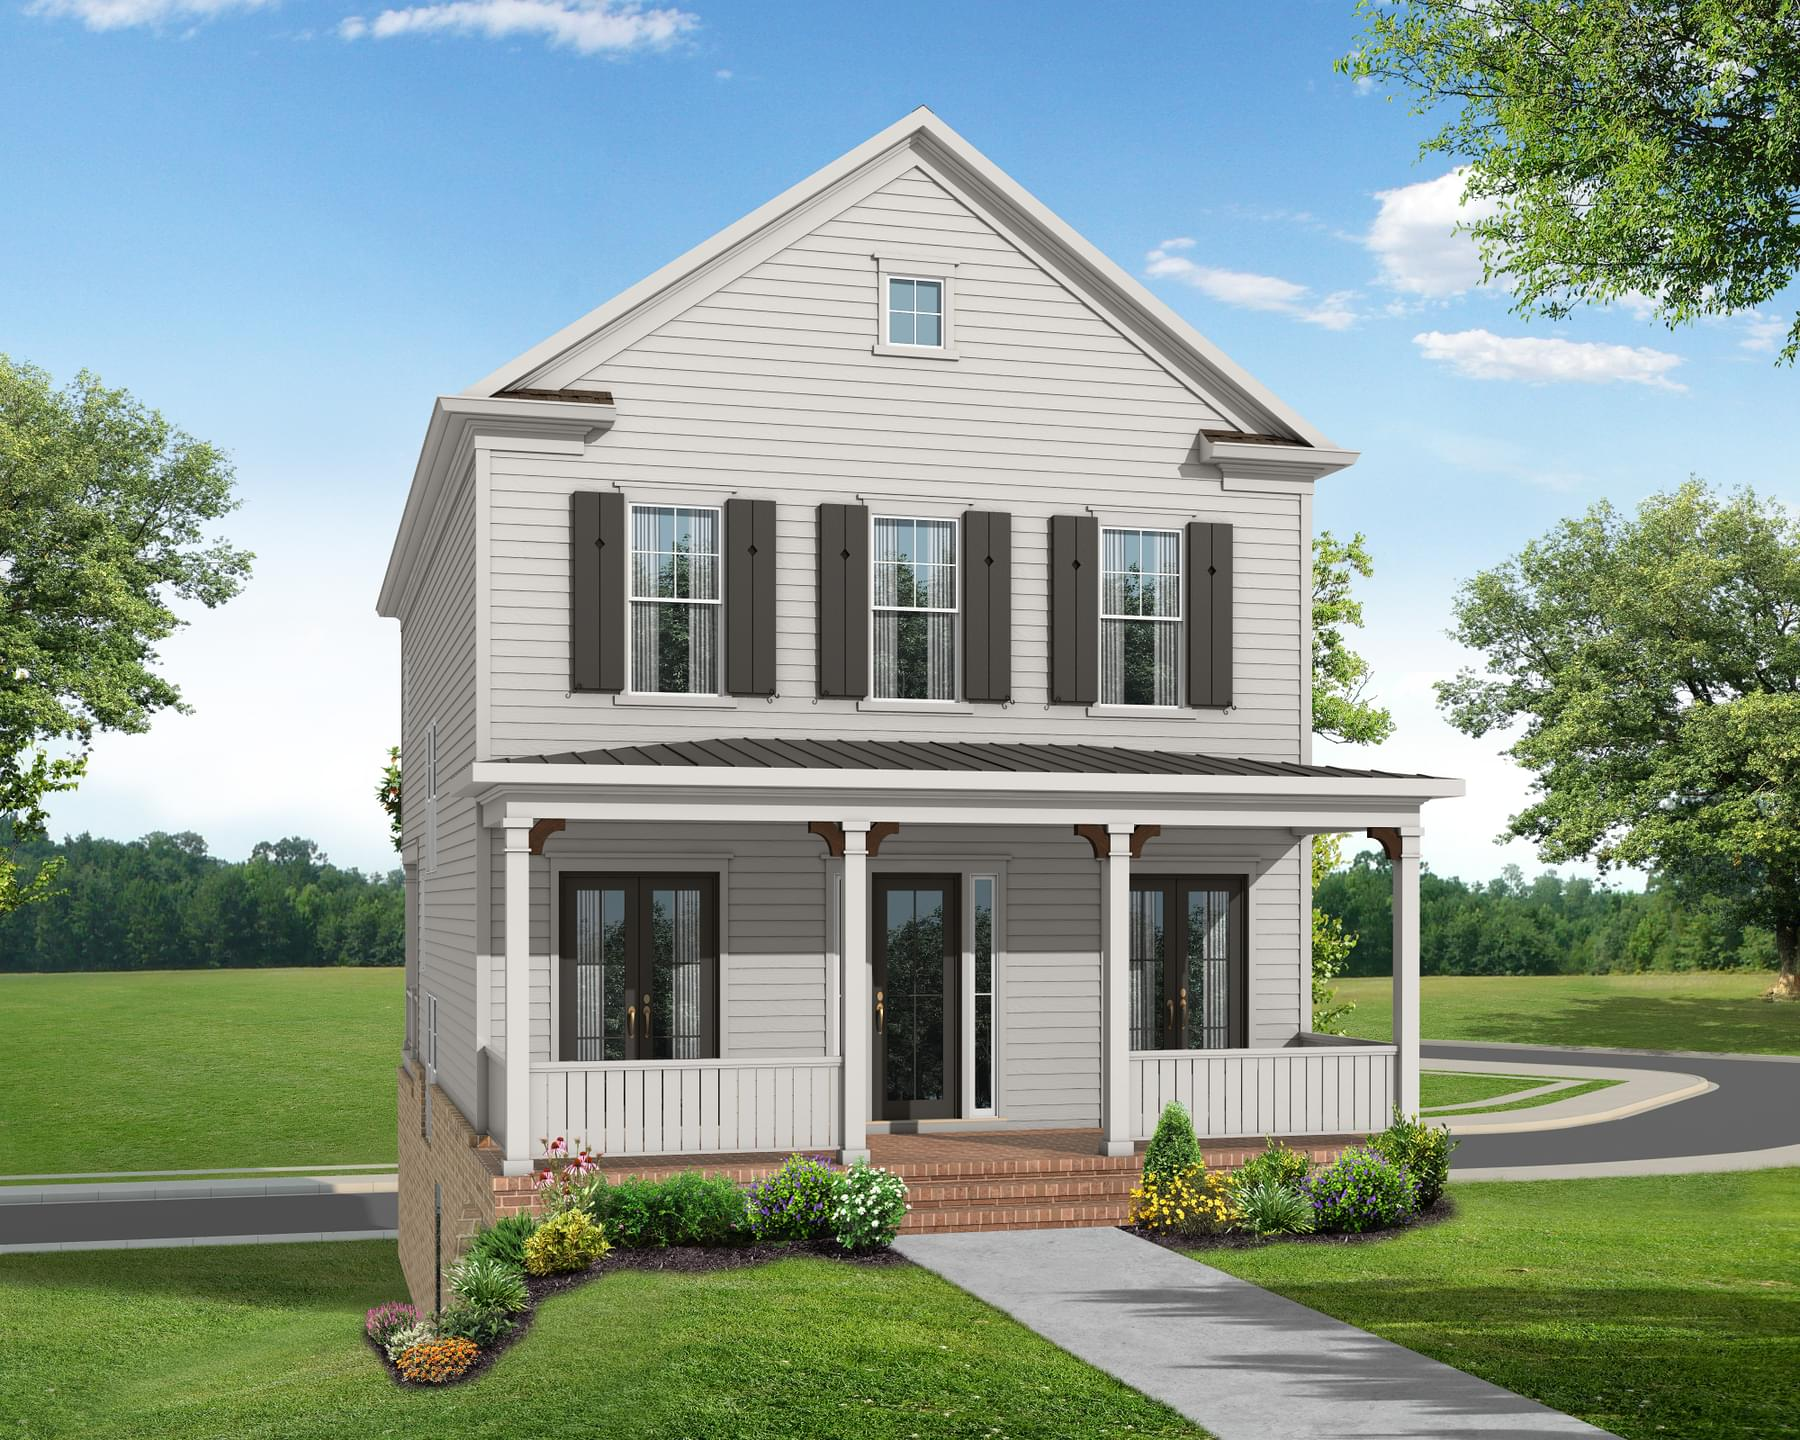 Elevation E. The Manchester Home with 3 Bedrooms